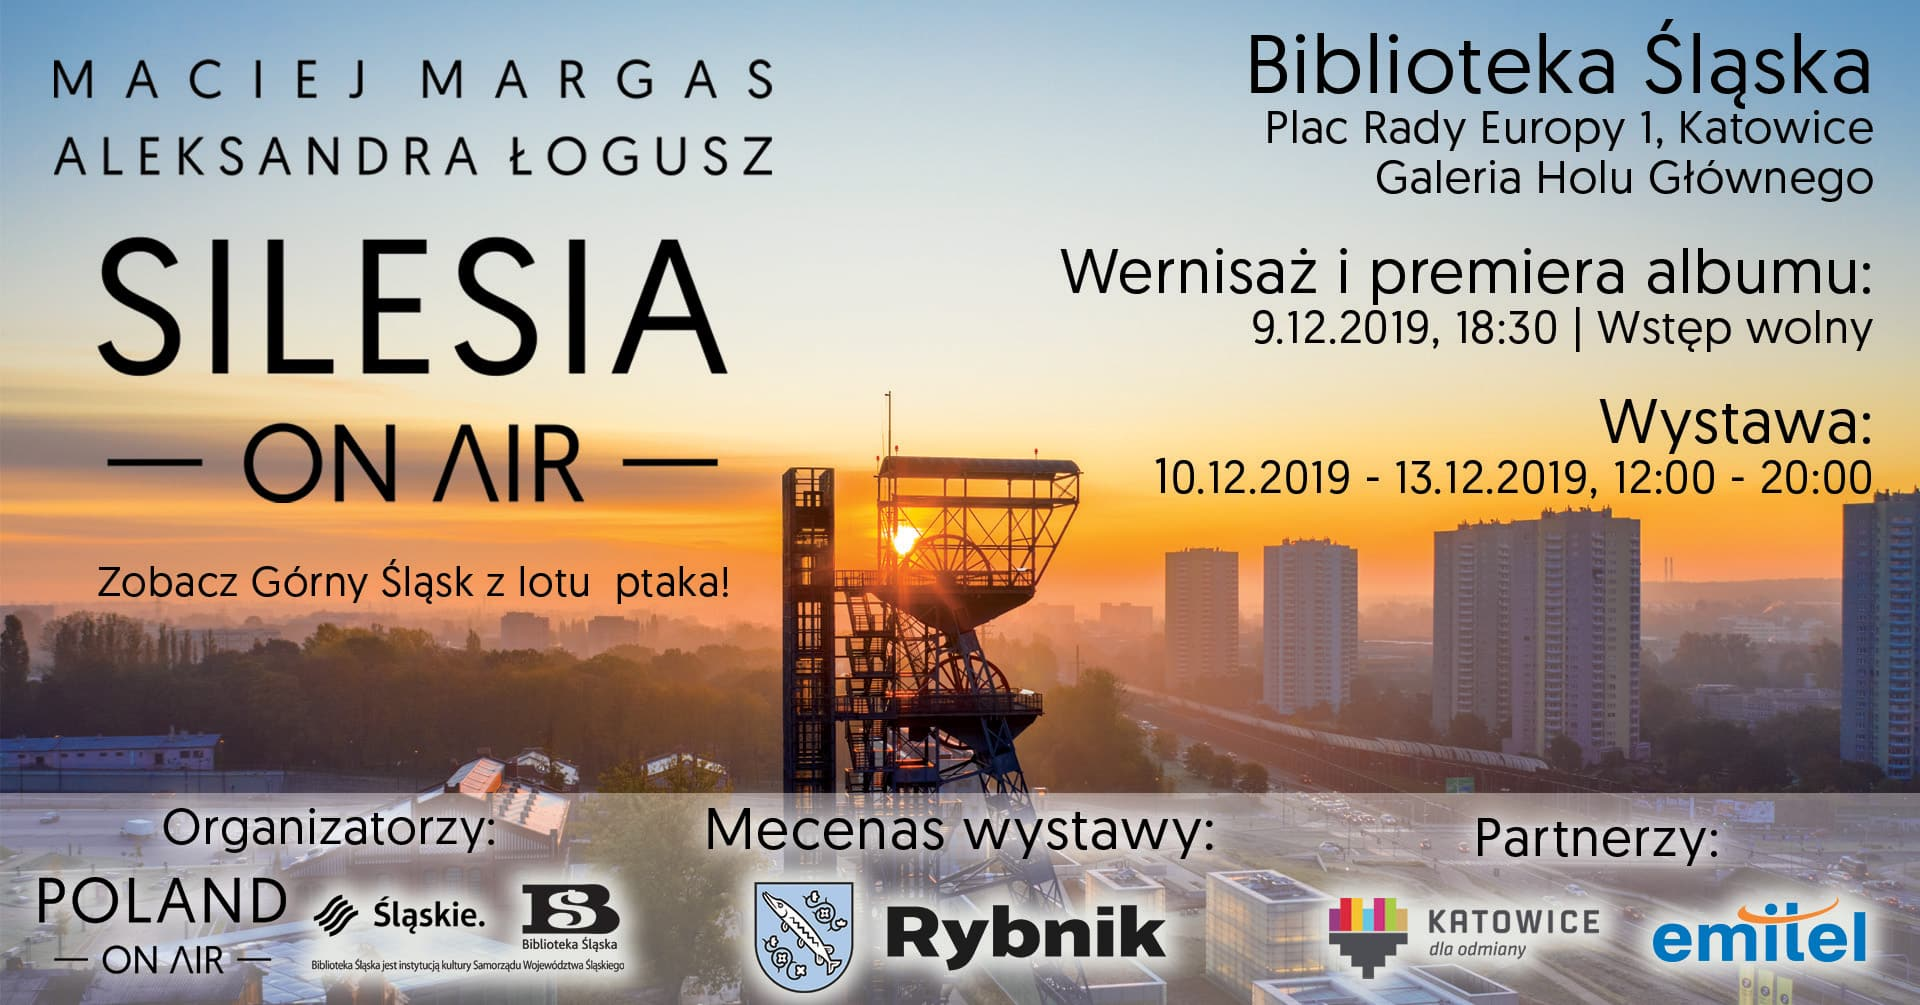 SILESIA ON AIR wystawa